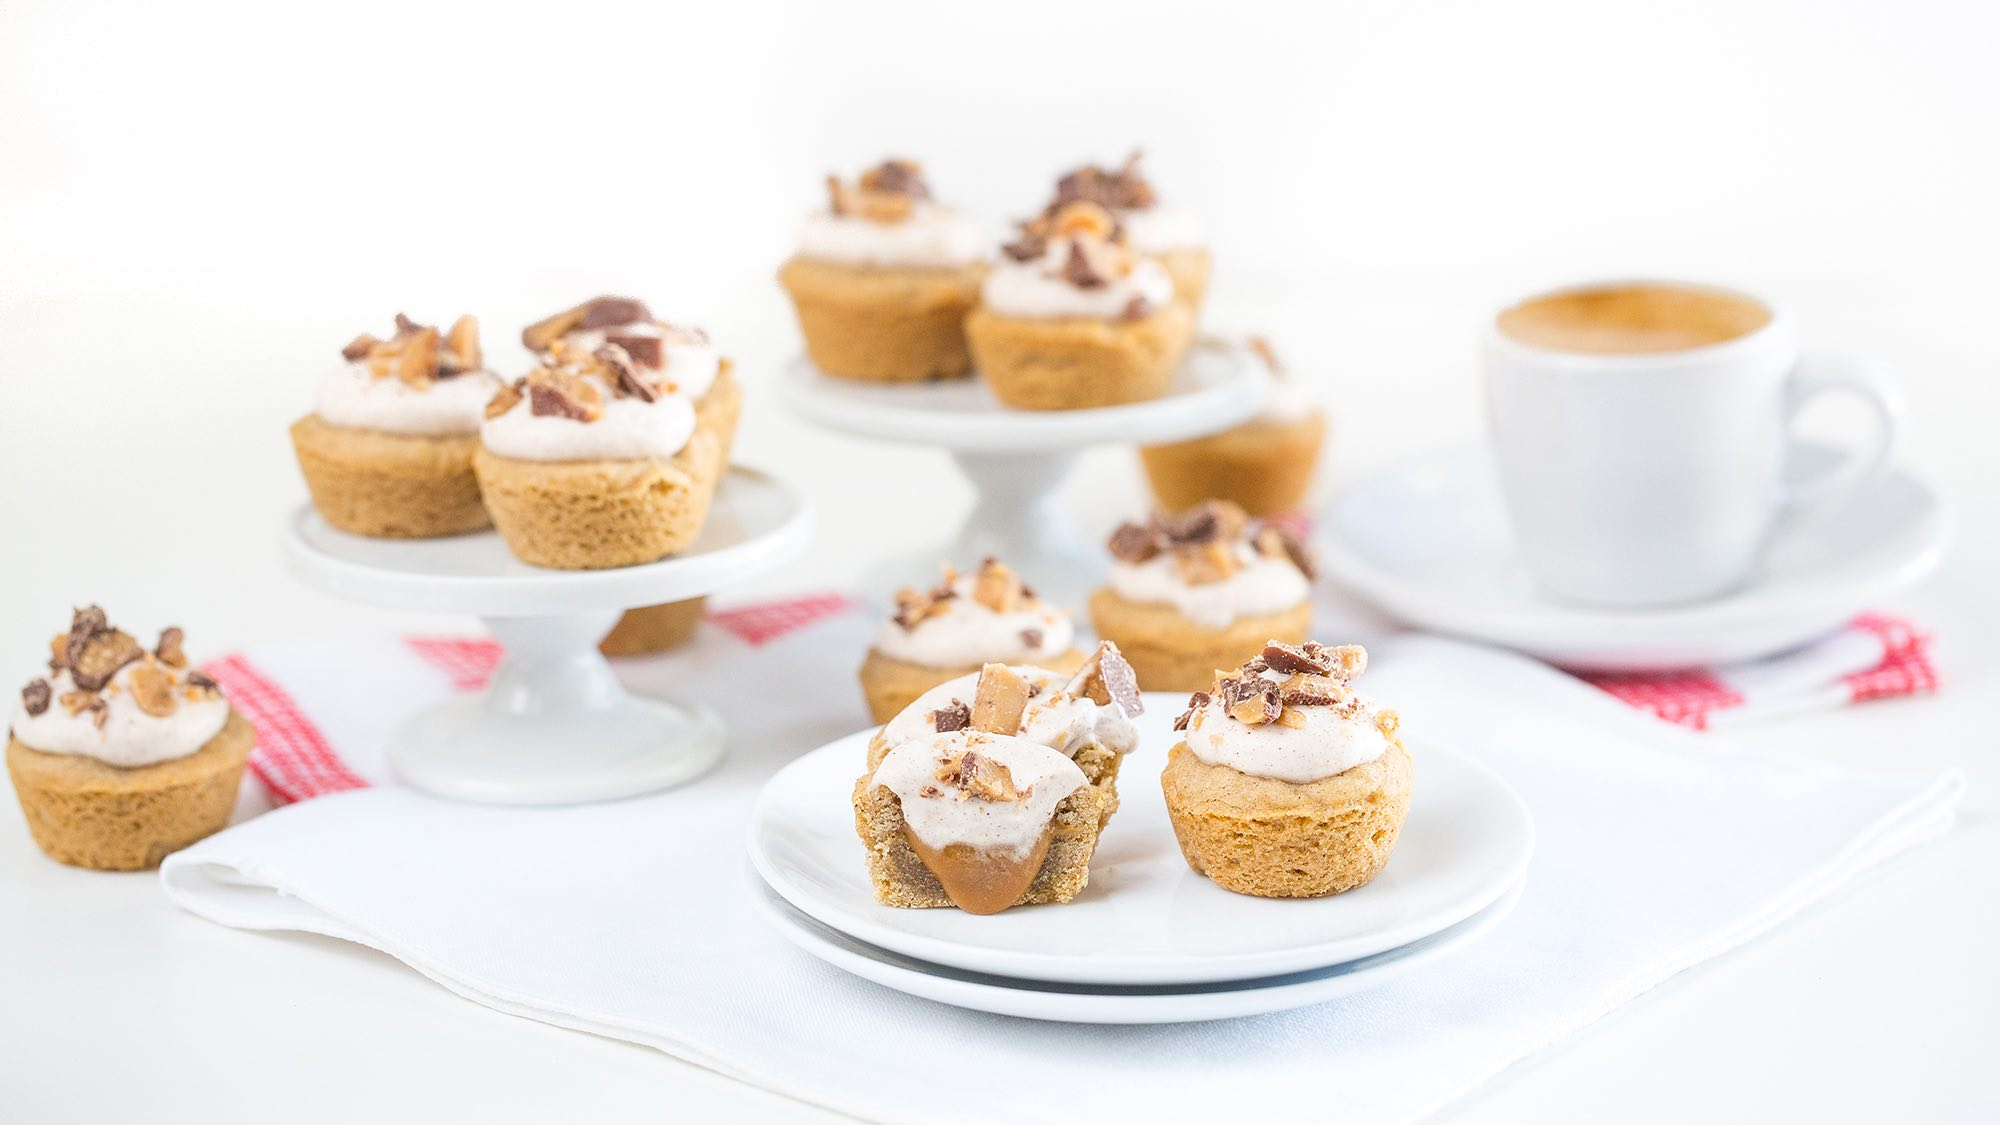 McCormick Snickerdoodle Bites with Caramel Filling and Coconut Whipped Cream